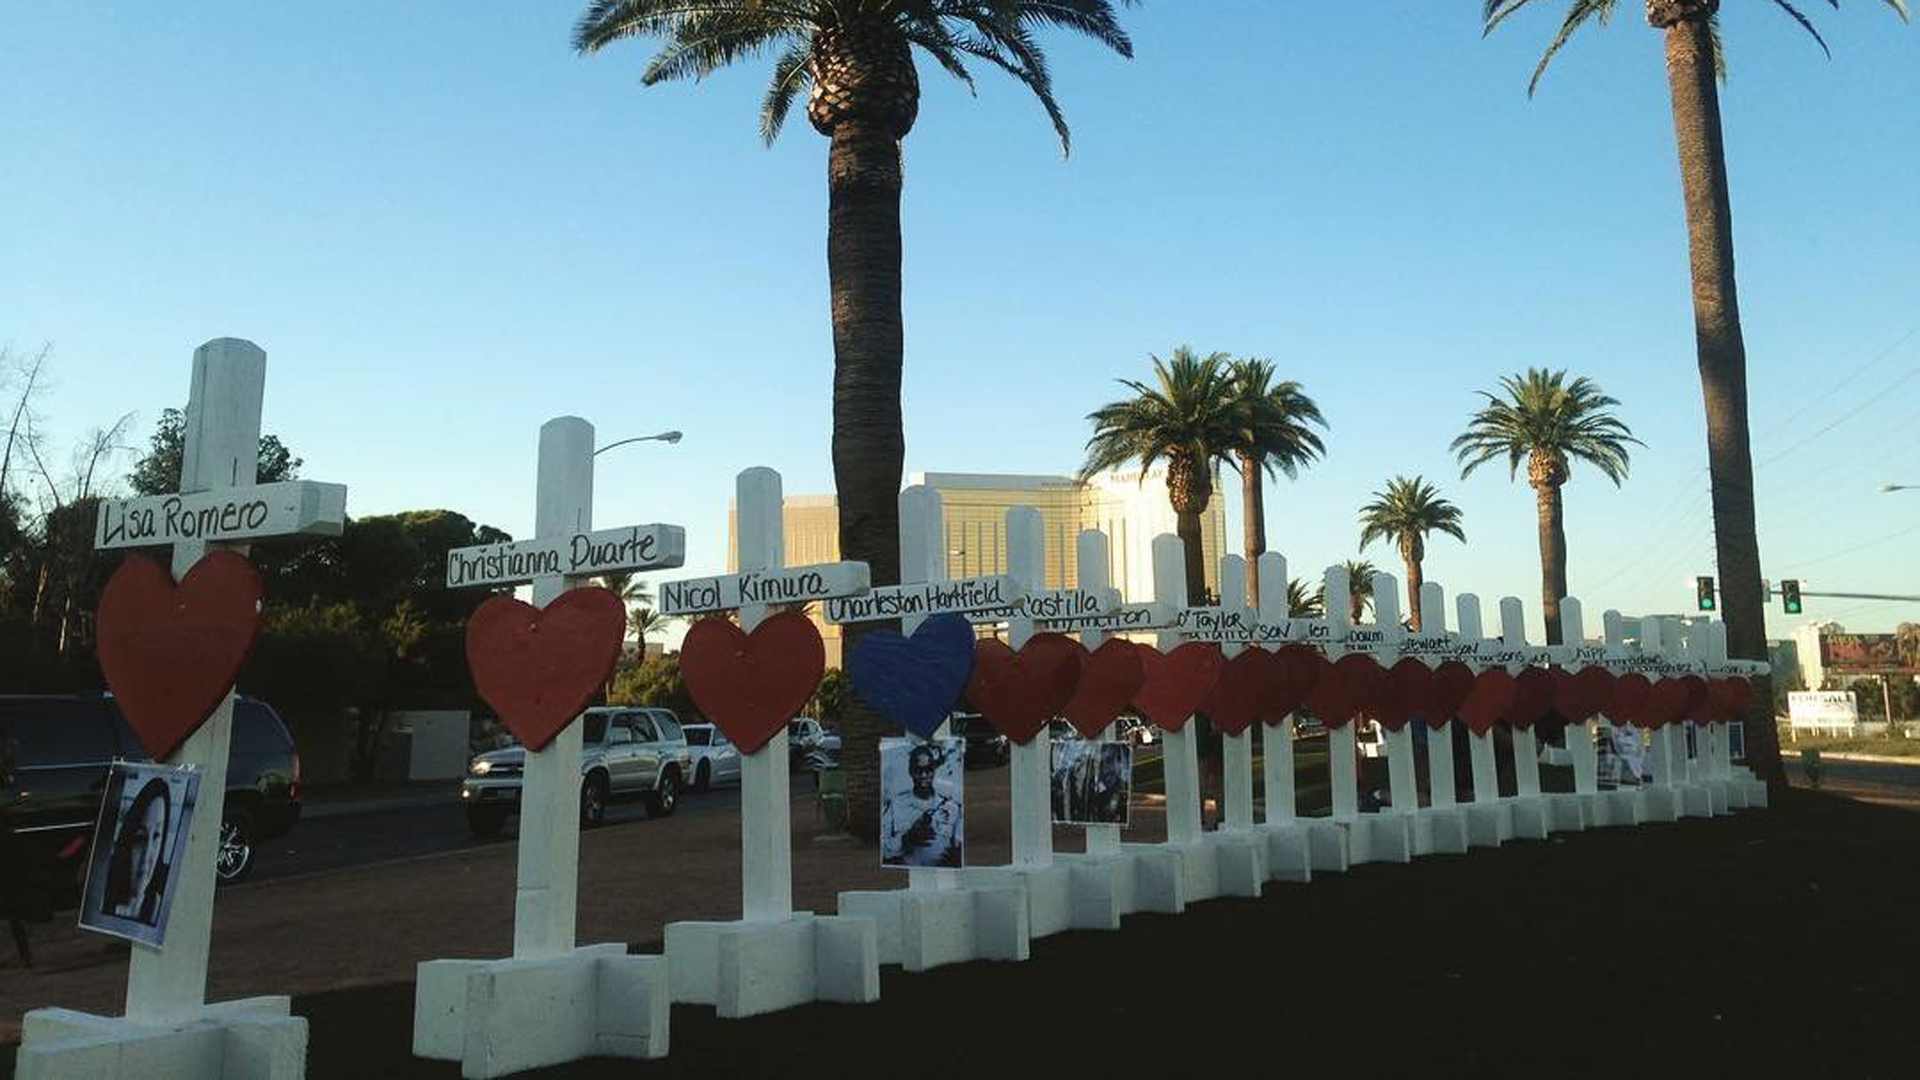 Fifty-eight crosses, one for each victim killed in the mass shooting, line the Las Vegas Strip on Oct. 1, 2019. (Credit: Tami Harper Winn)